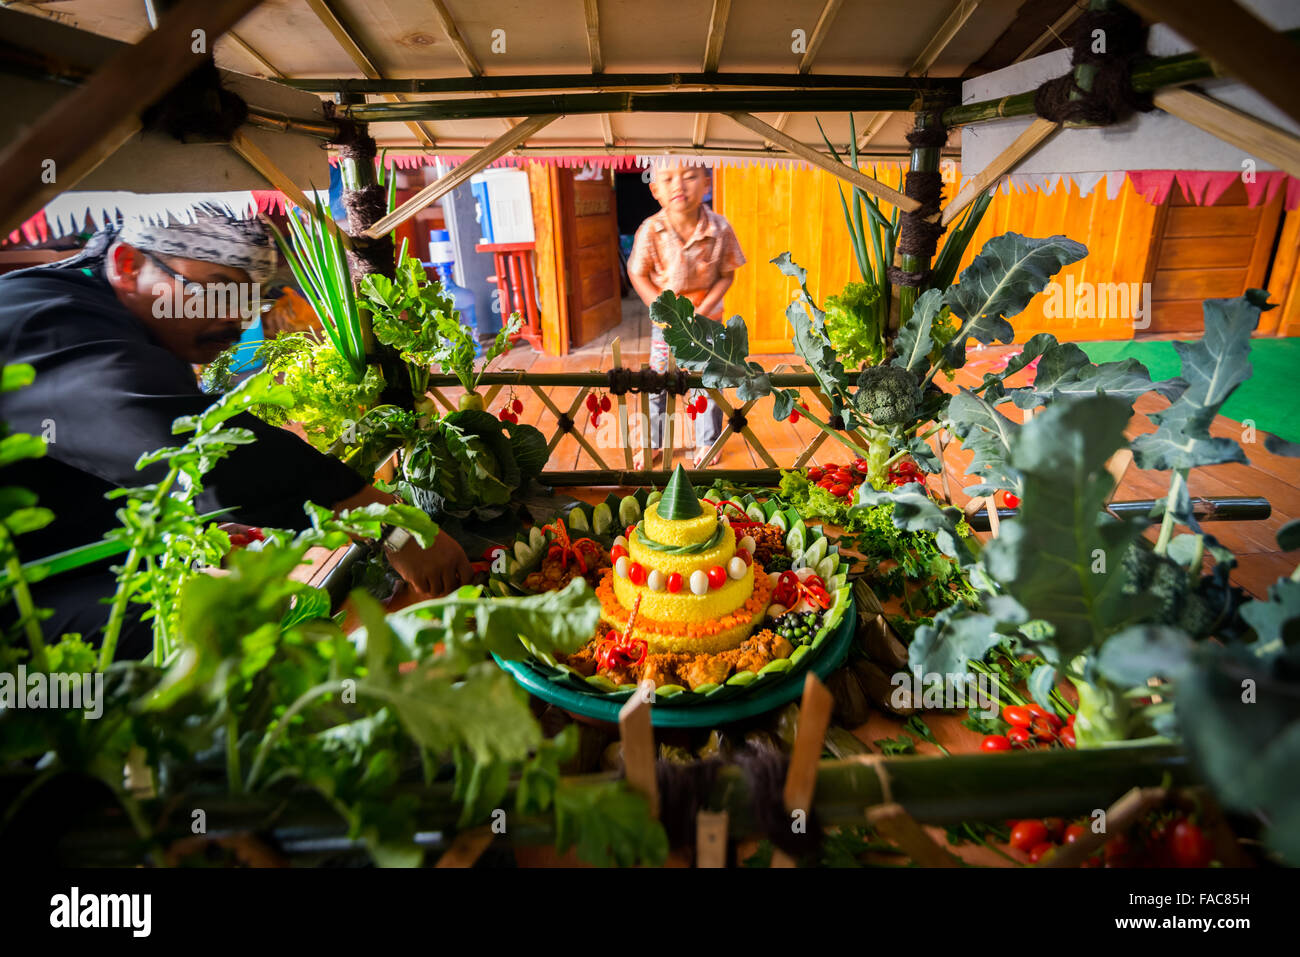 Sundanese man preparing traditional offering set consists of rice, vegetables, and fruits. - Stock Image